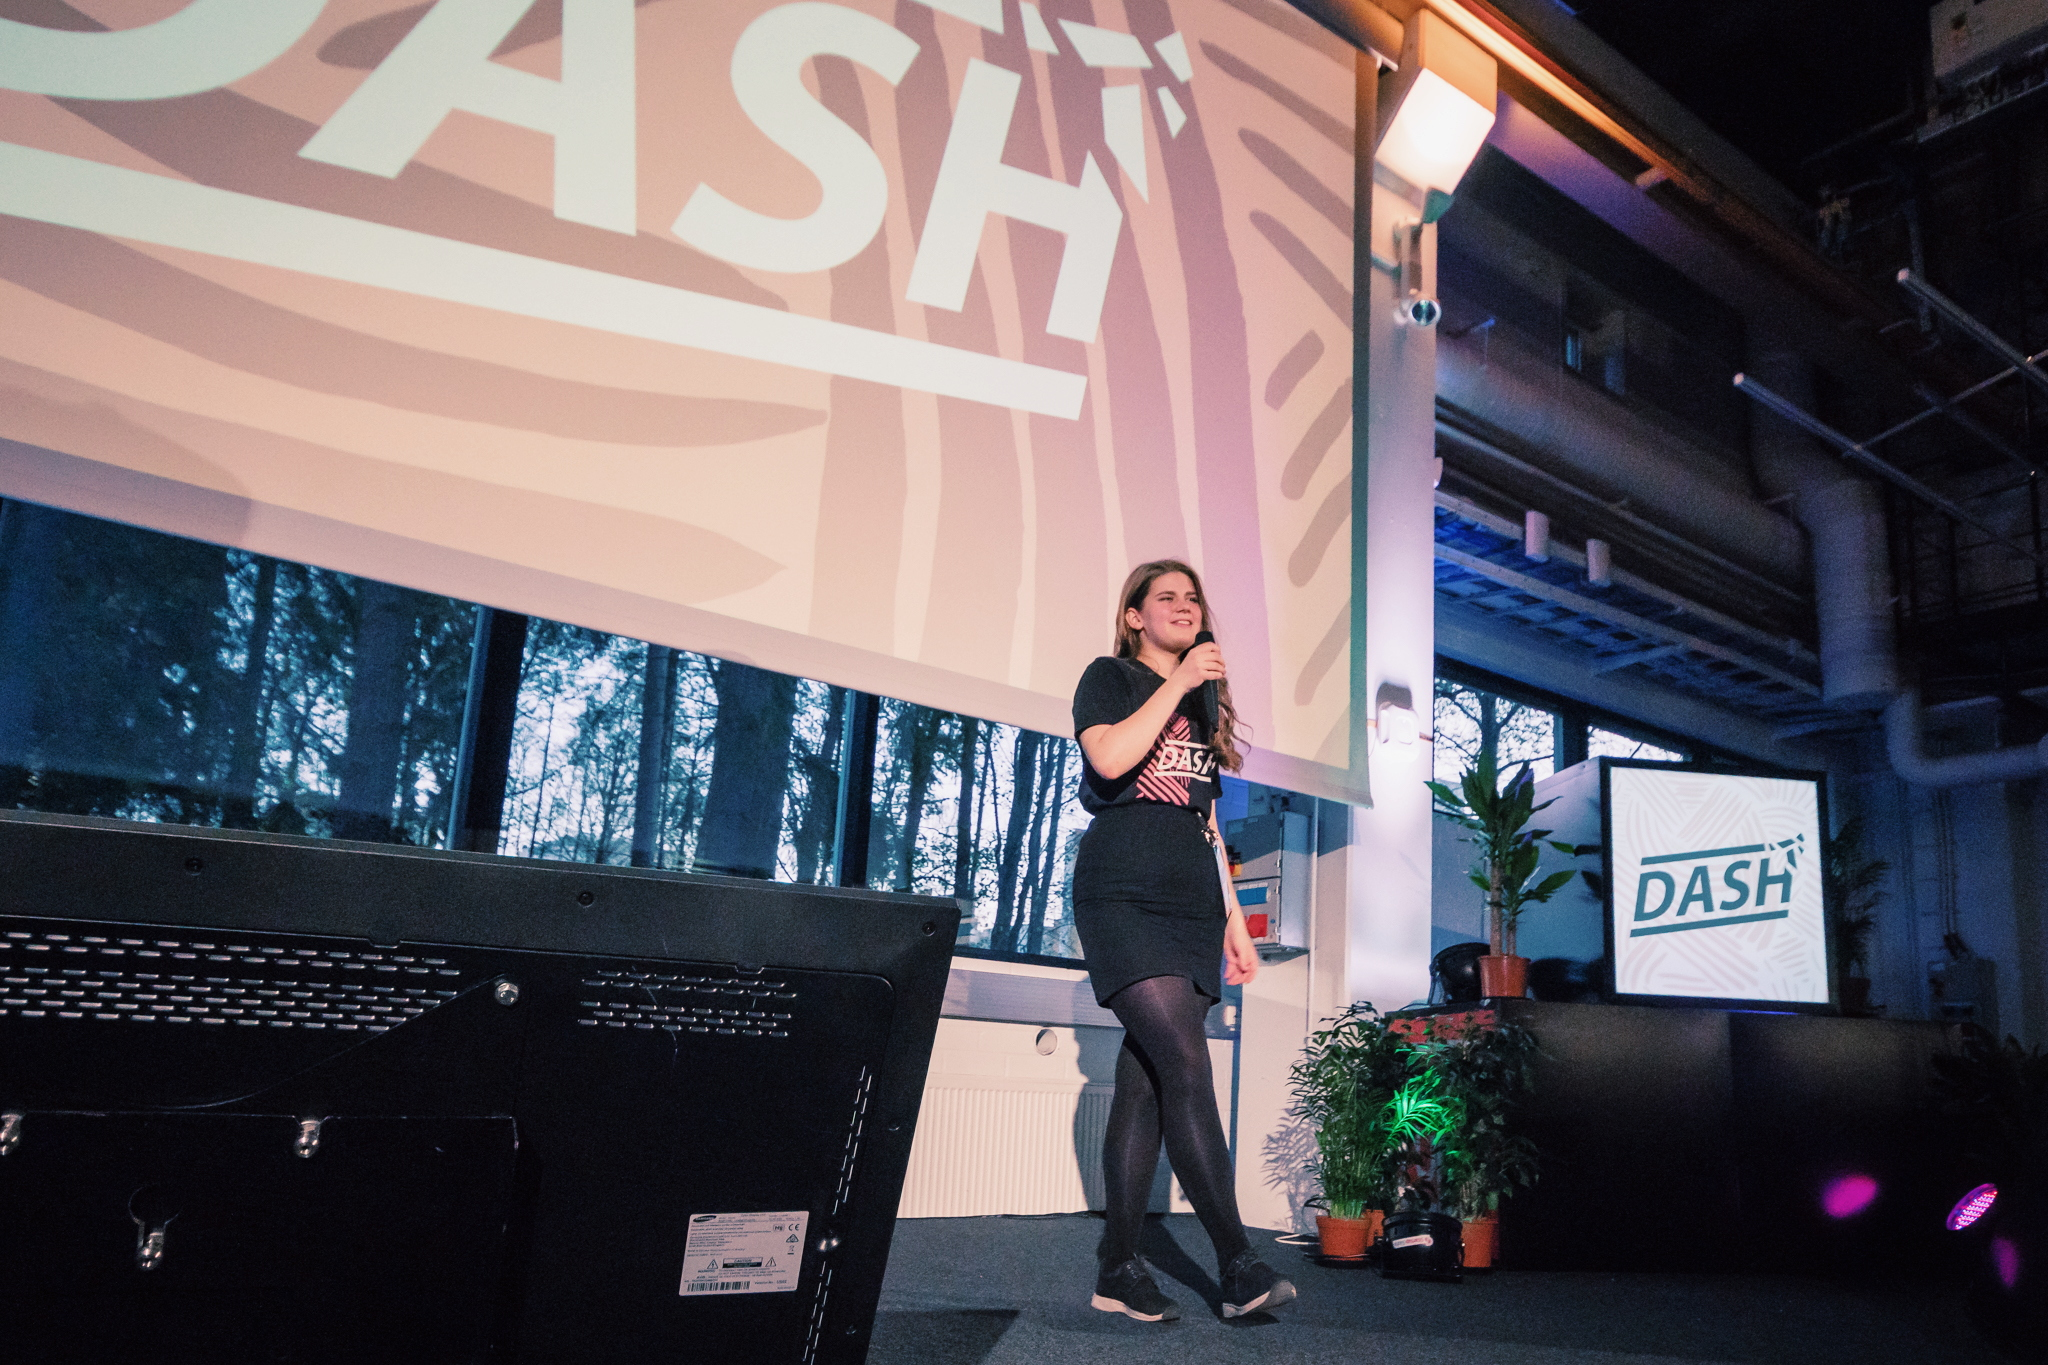 In the year 2017 I spent well over one thousand hours on Dash. Many people have asked me what on earth made me spend so much time on it - it wasn't Redbull, mindfulness nor cocaine, but something else.